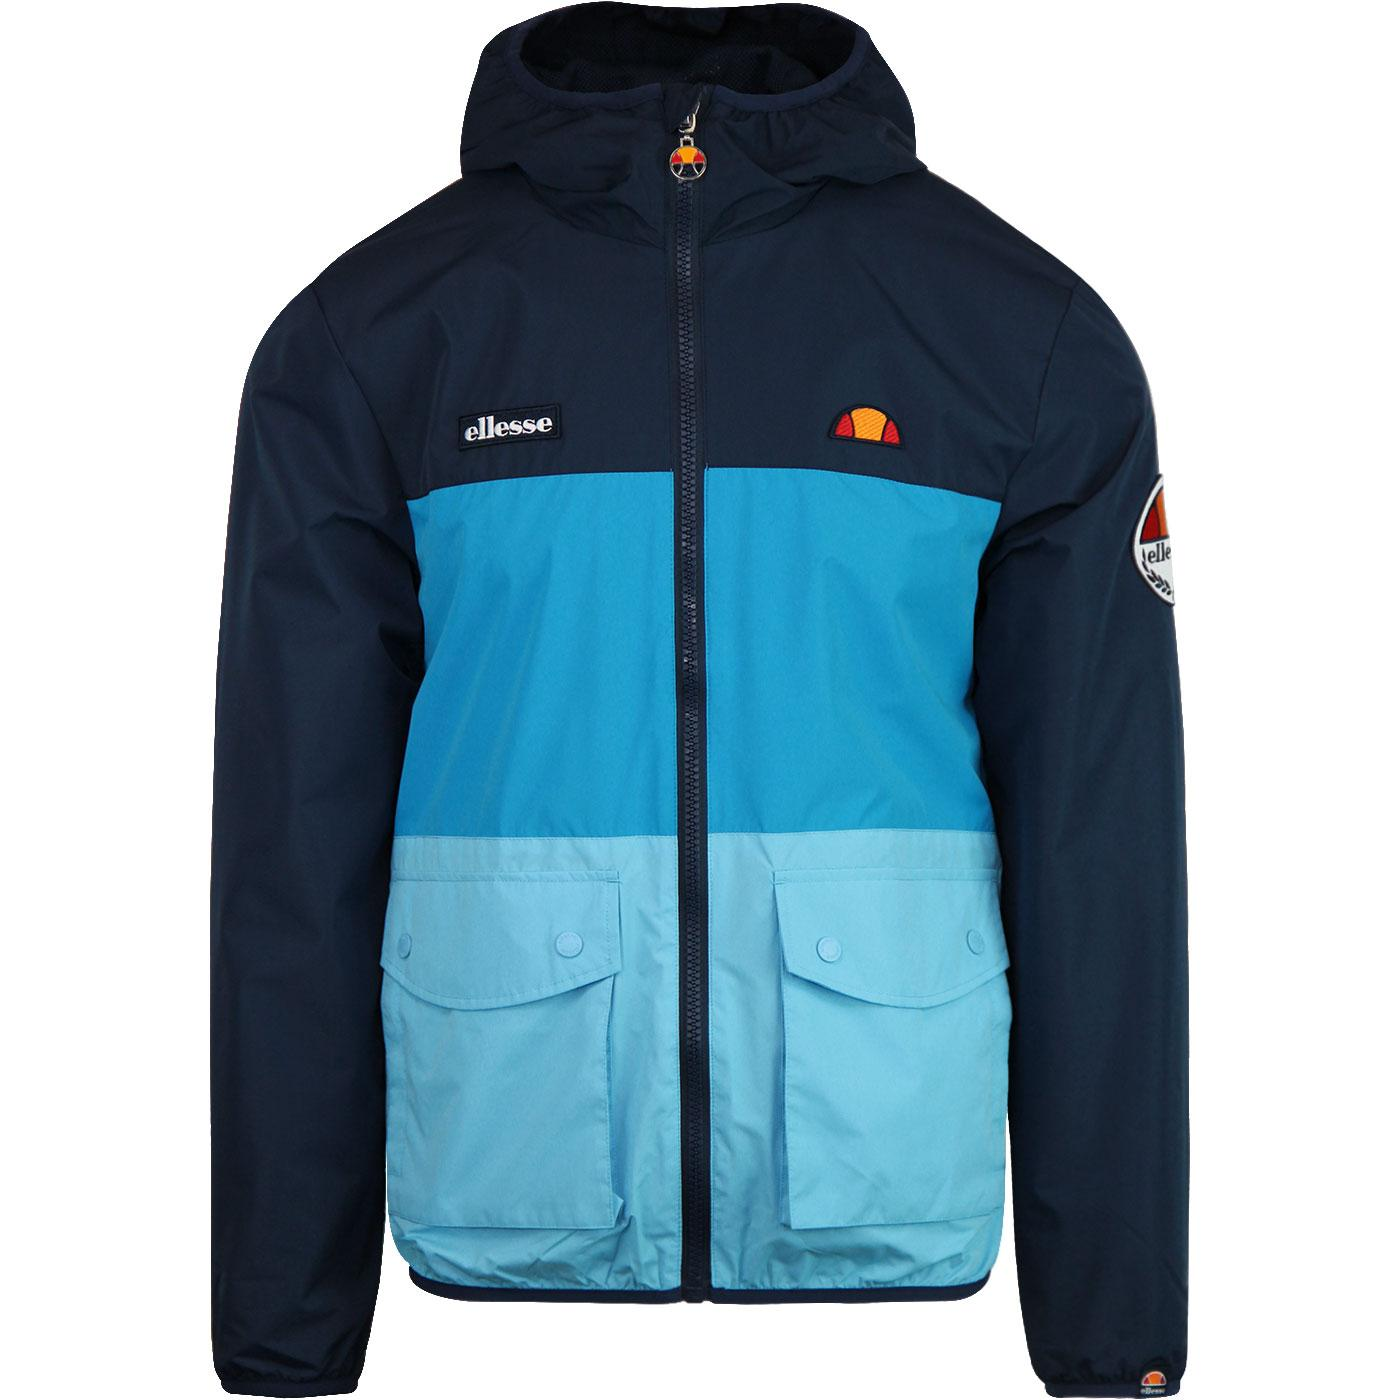 Trio ELLESSE Men's Full Zip Retro Jacket in Navy